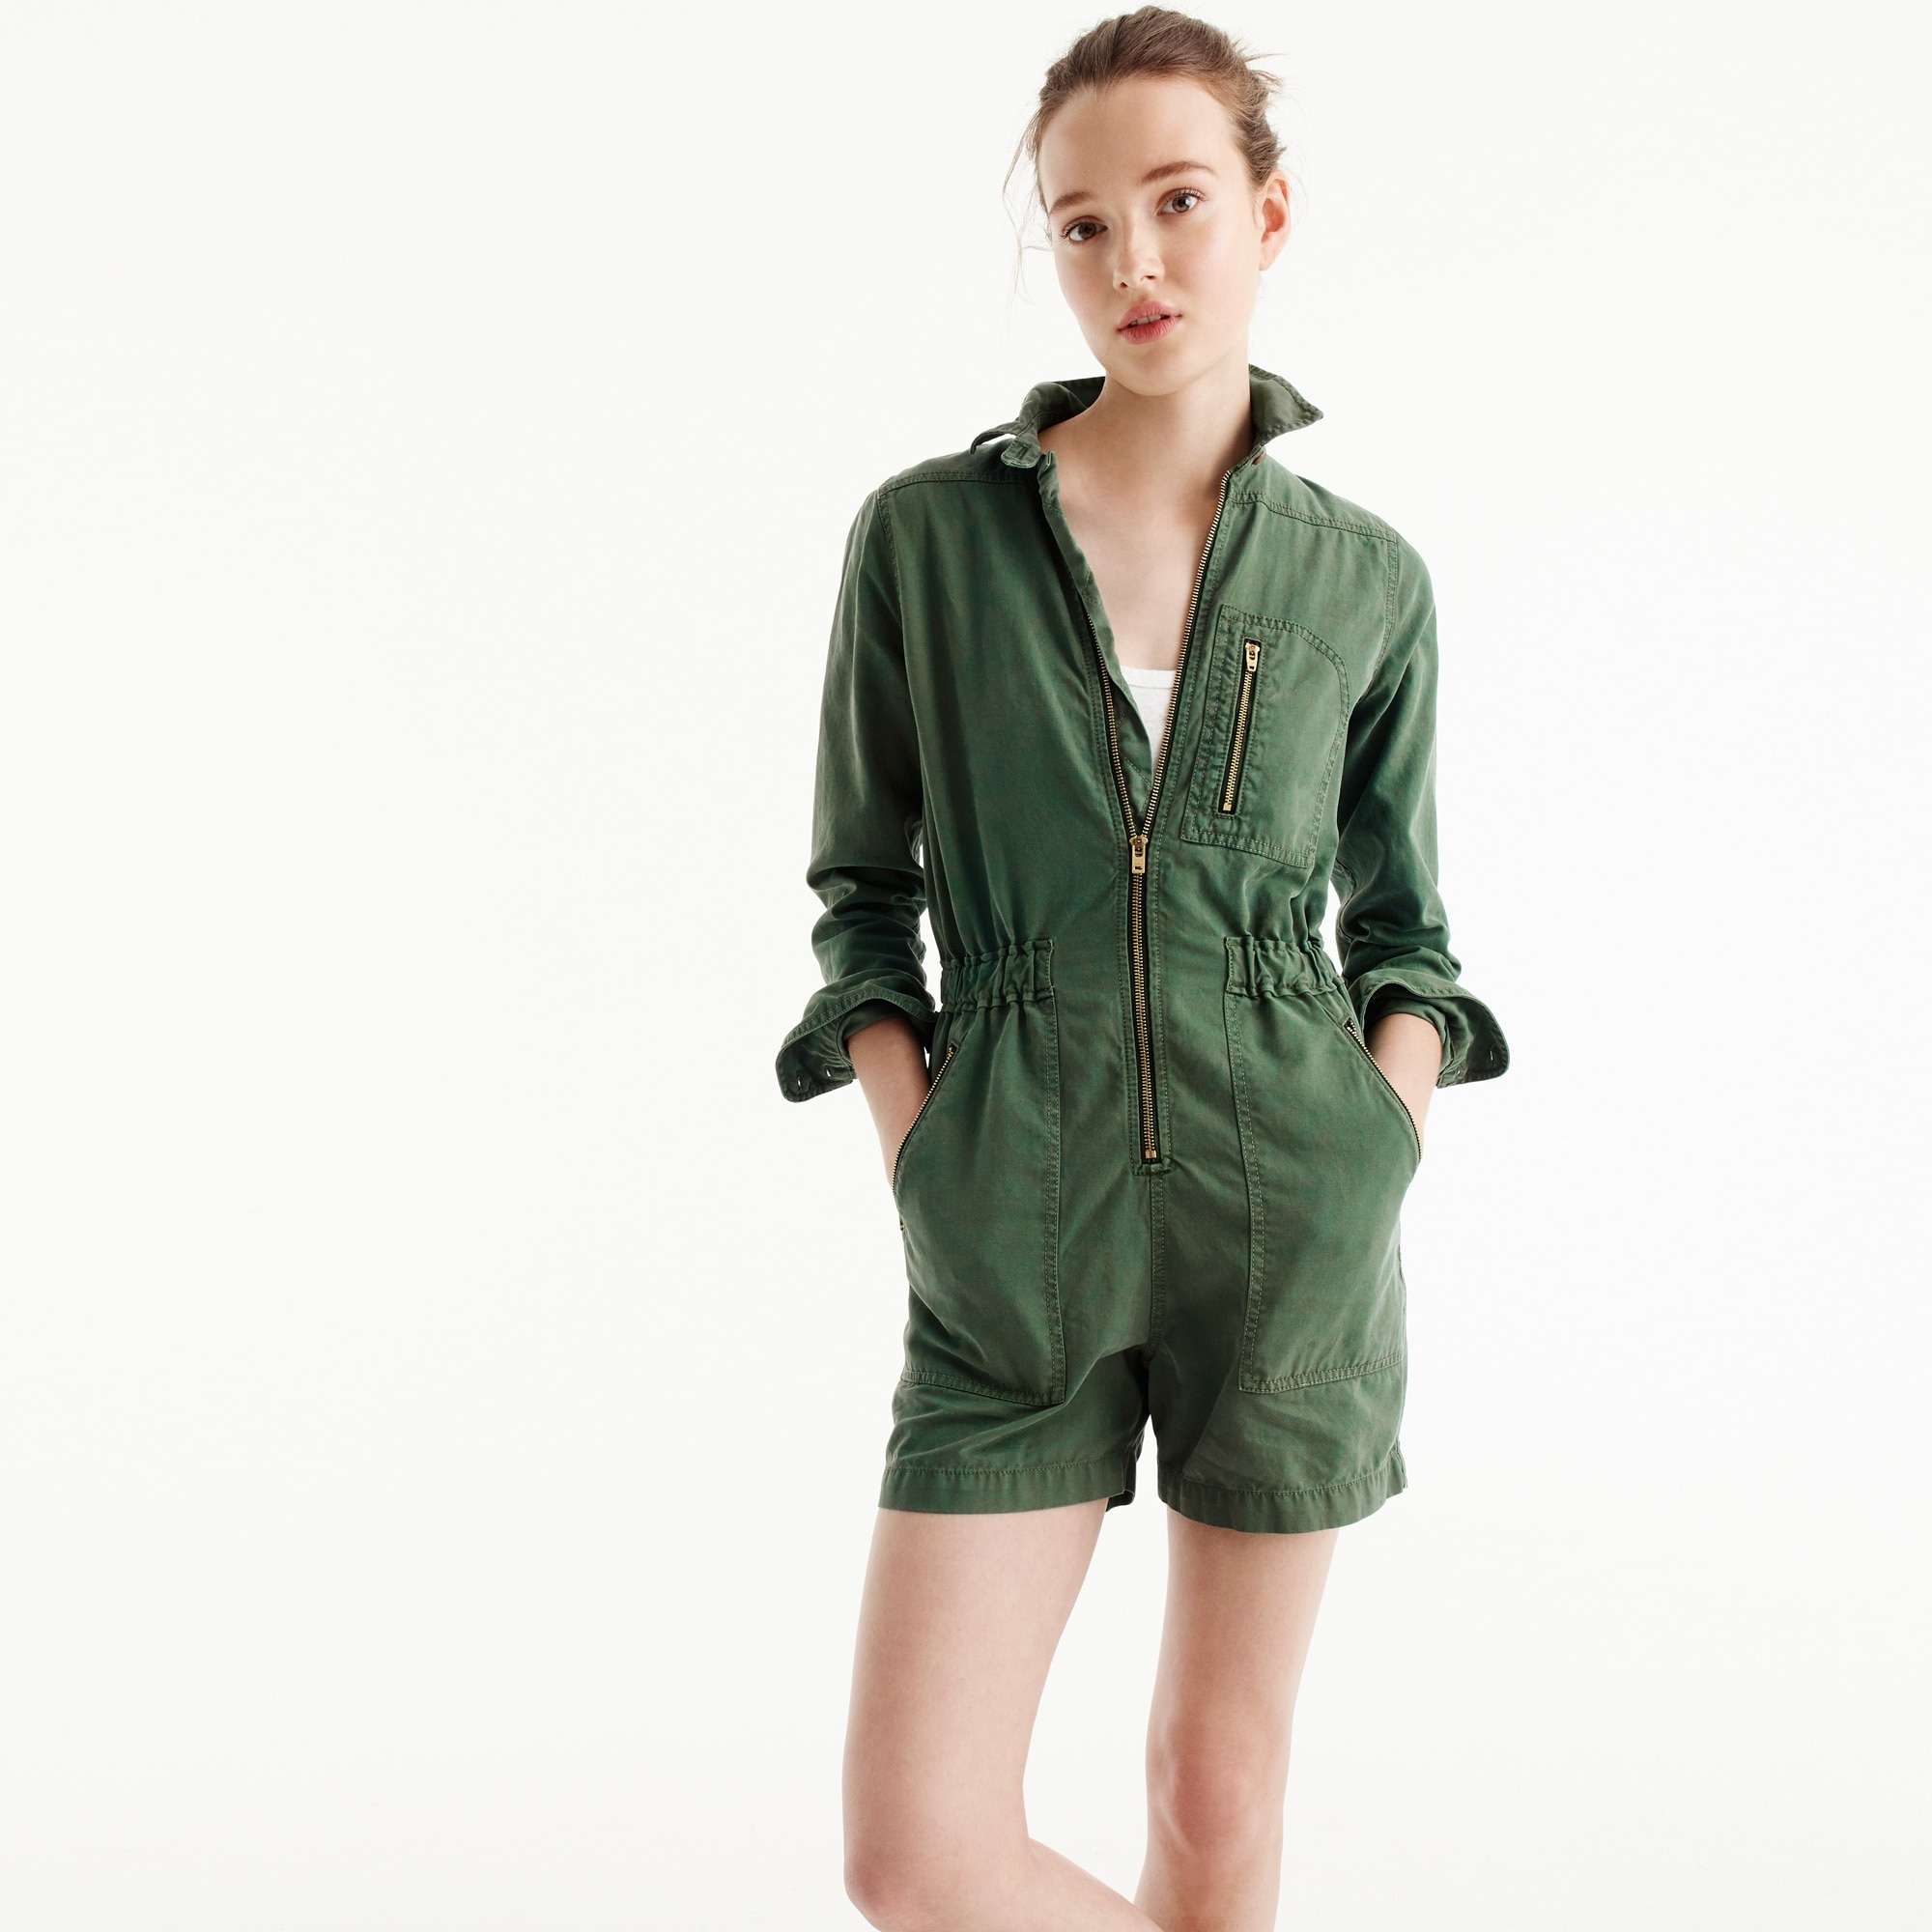 Image 1 for Utility romper